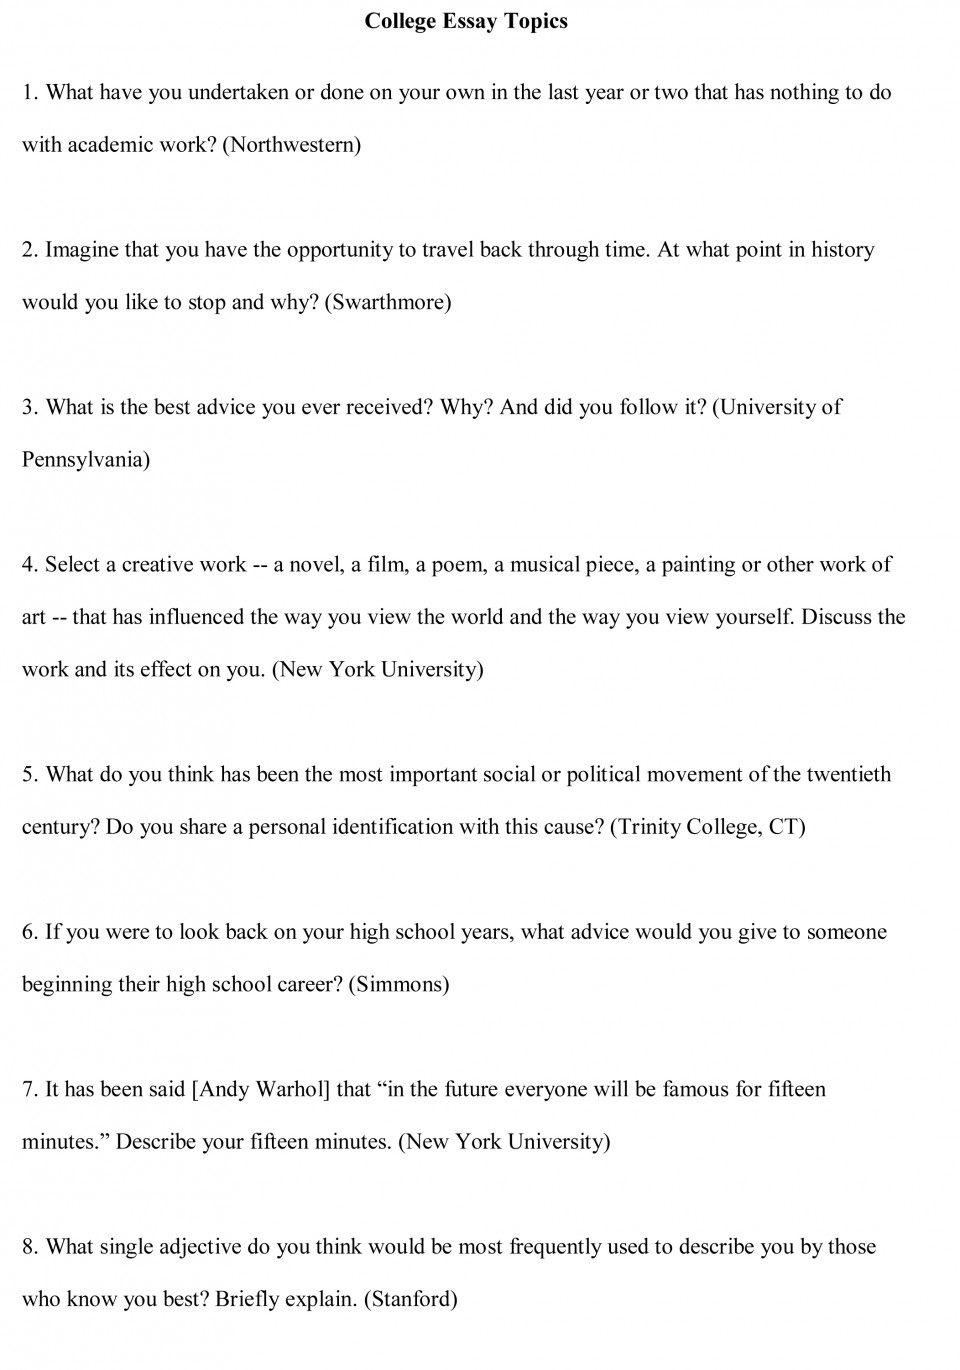 003 College Essay Topics Free Sample1 Prompts Impressive And Examples Application Uc 2017 960